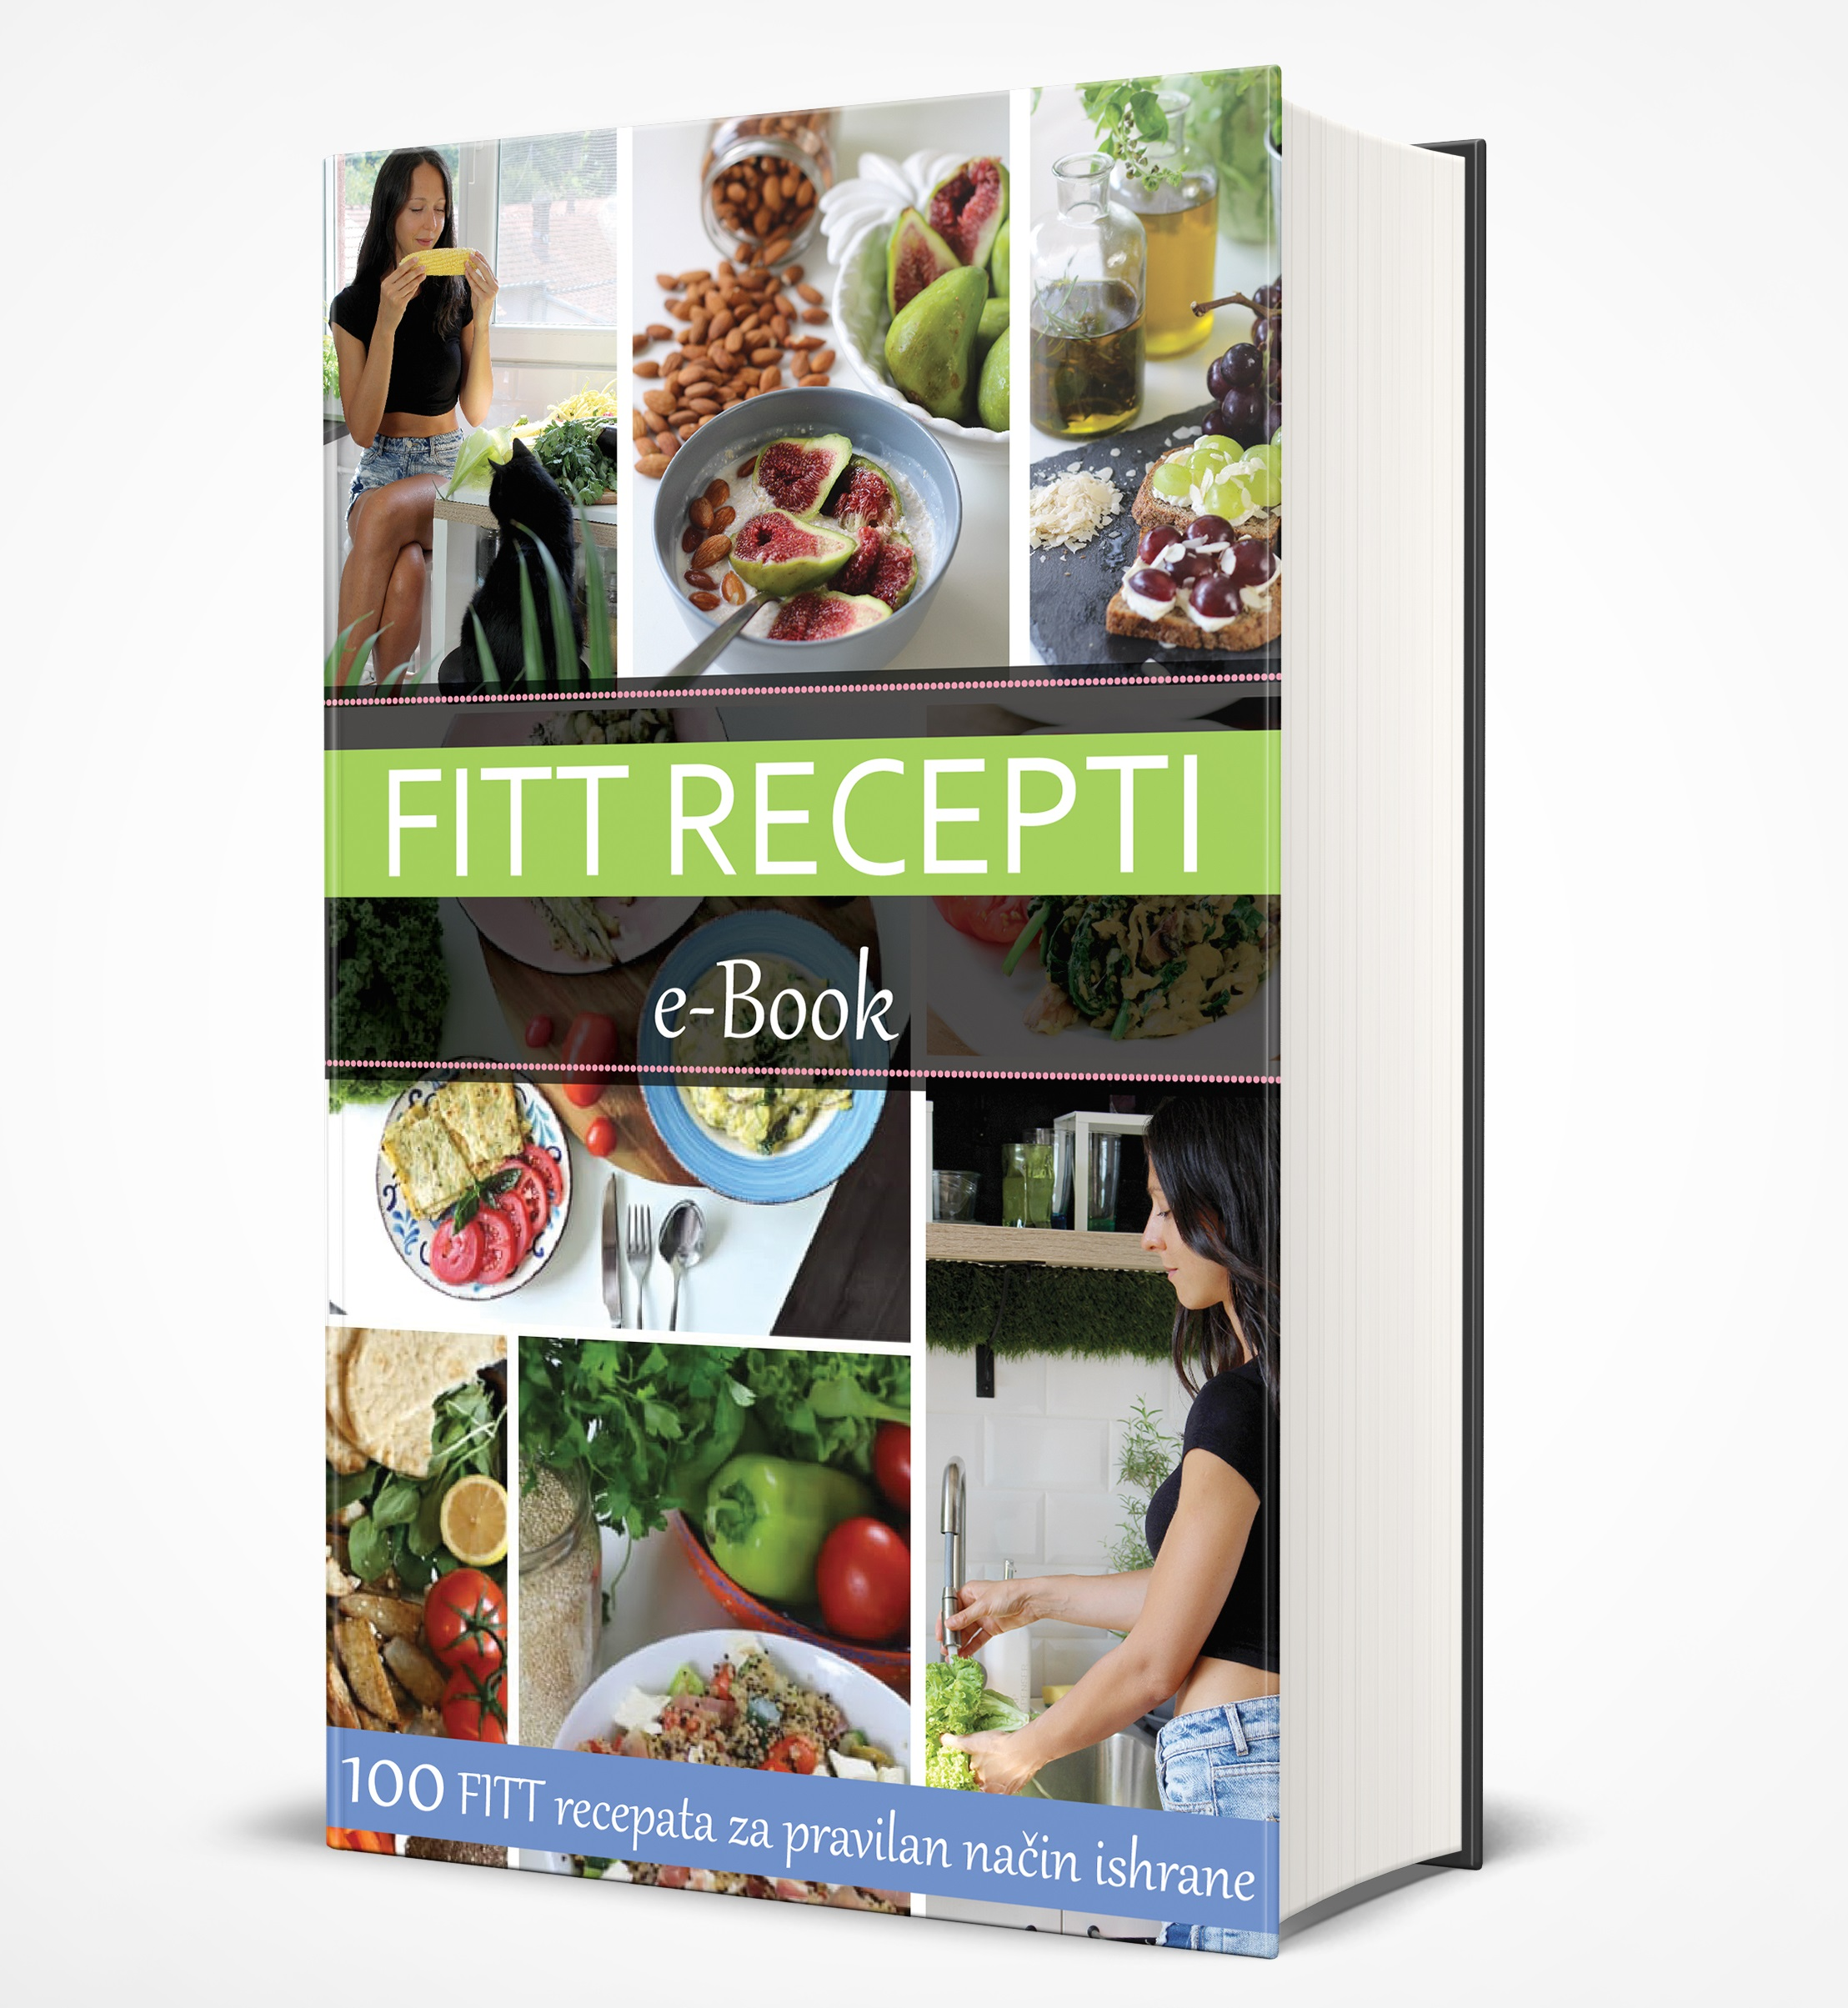 fitt eBook